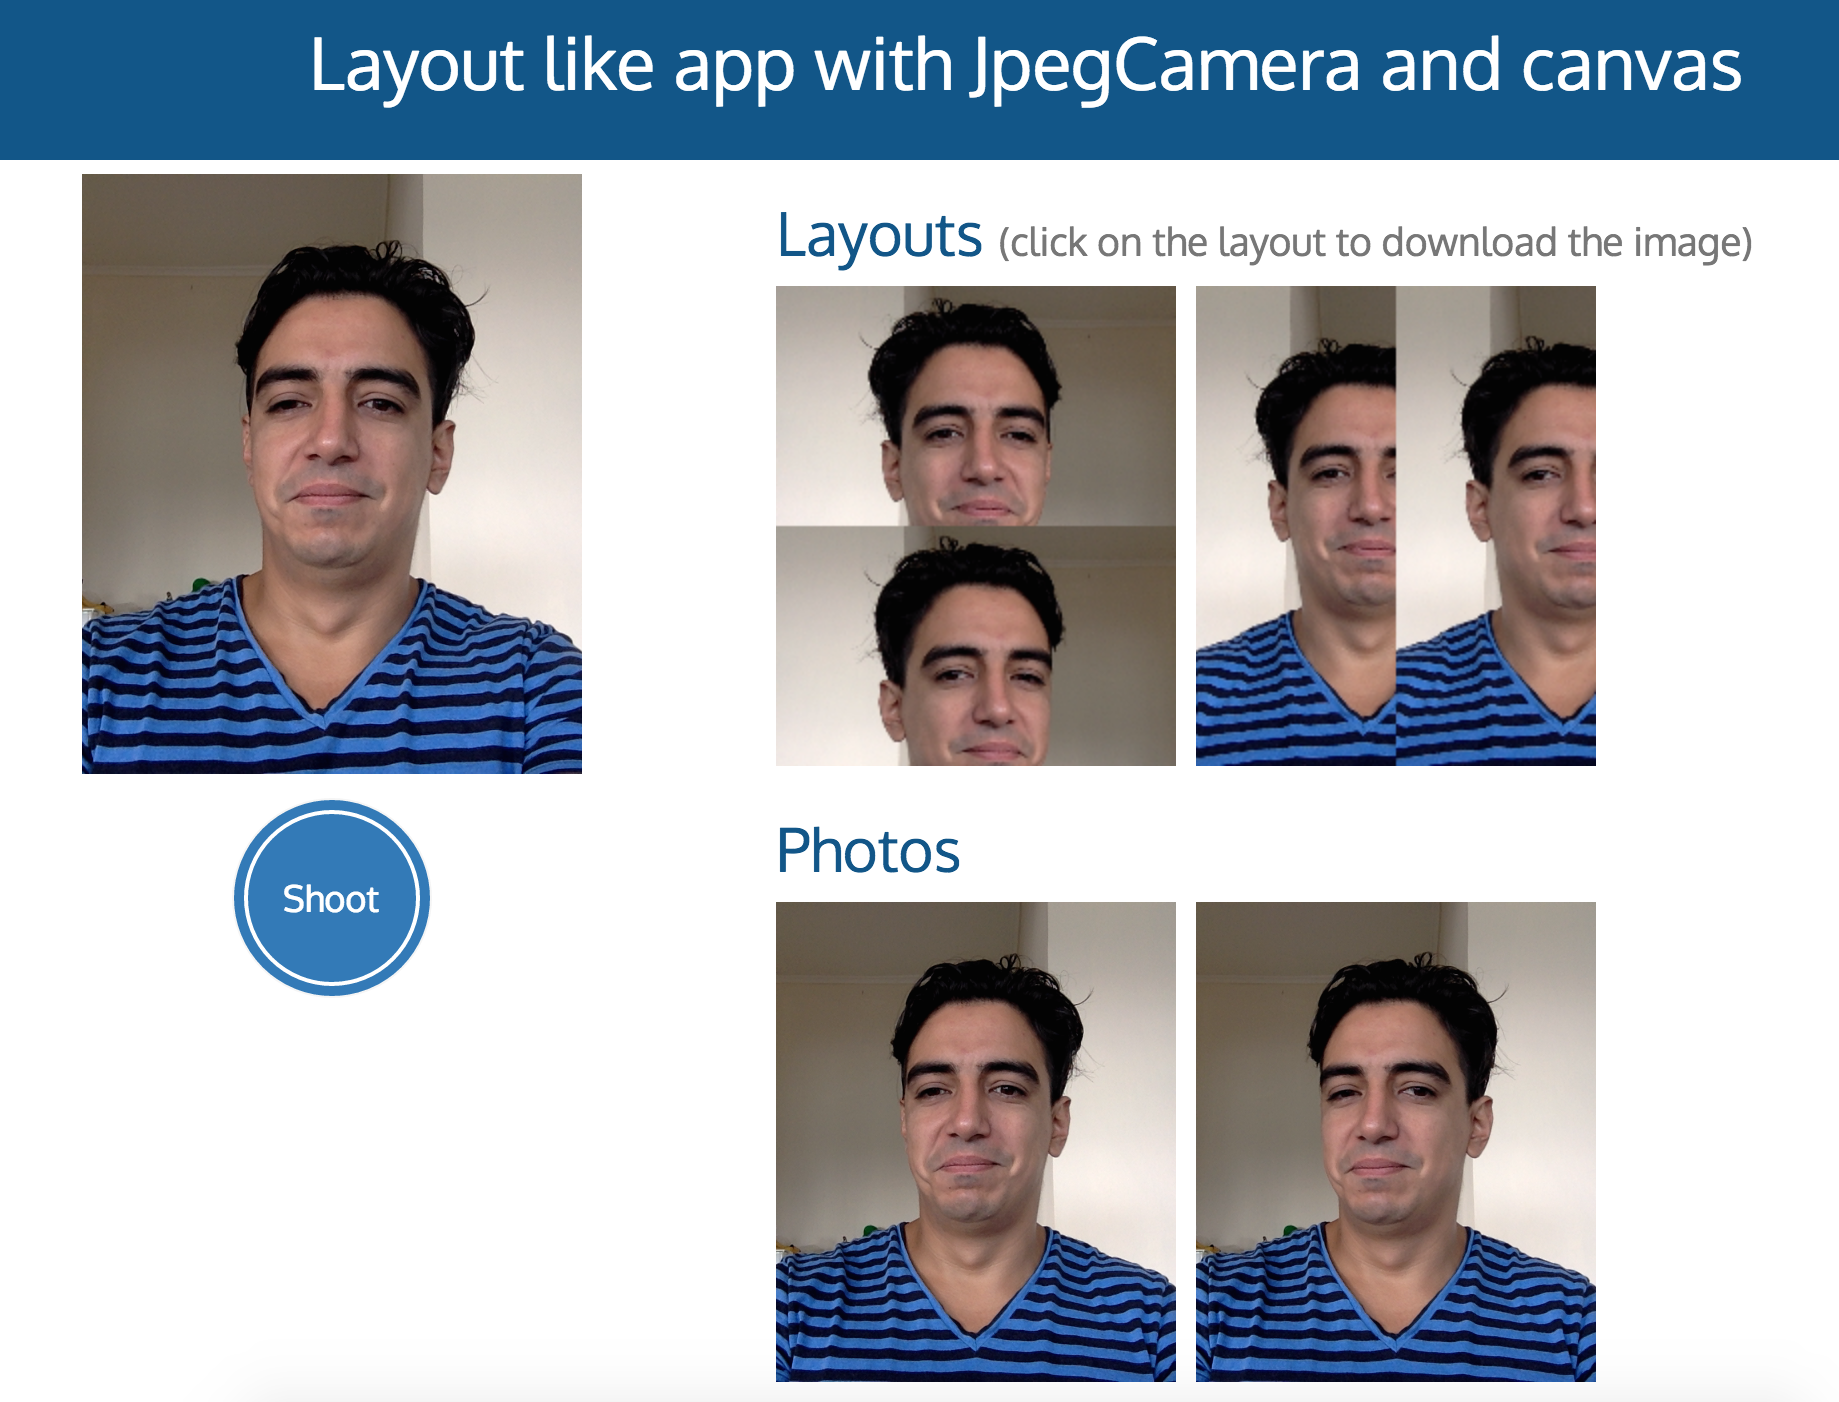 Screenshot of the Layout-like app using JpegCamera and Canvas.